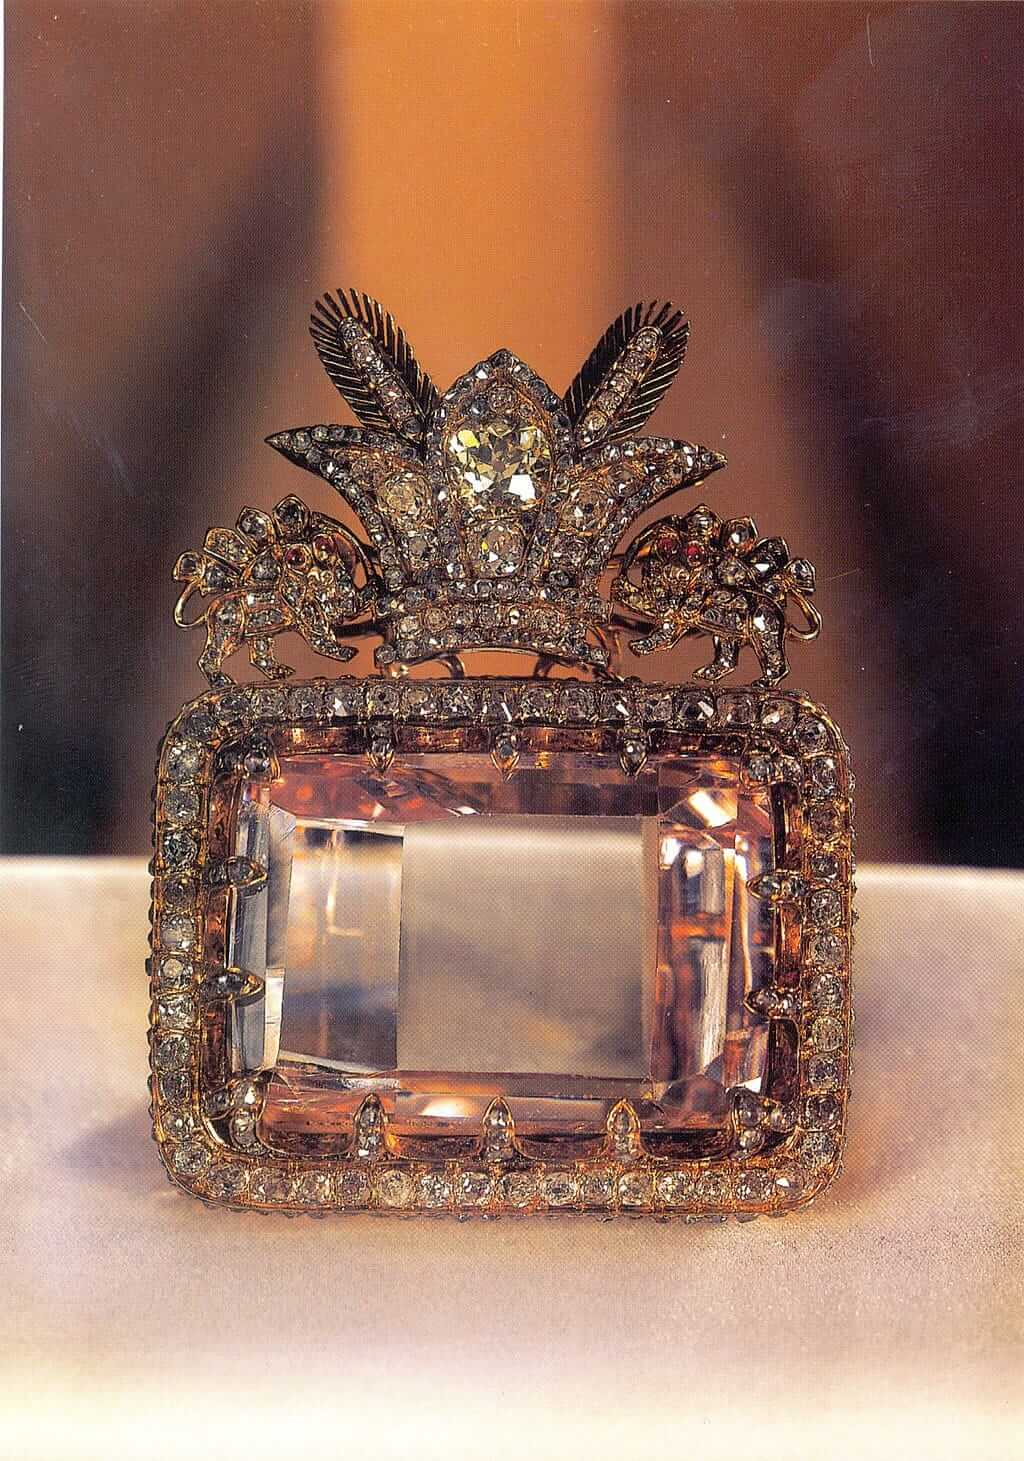 Daria-e-Noor Diamond - Treasury of National Jewels, Tehran, Iran